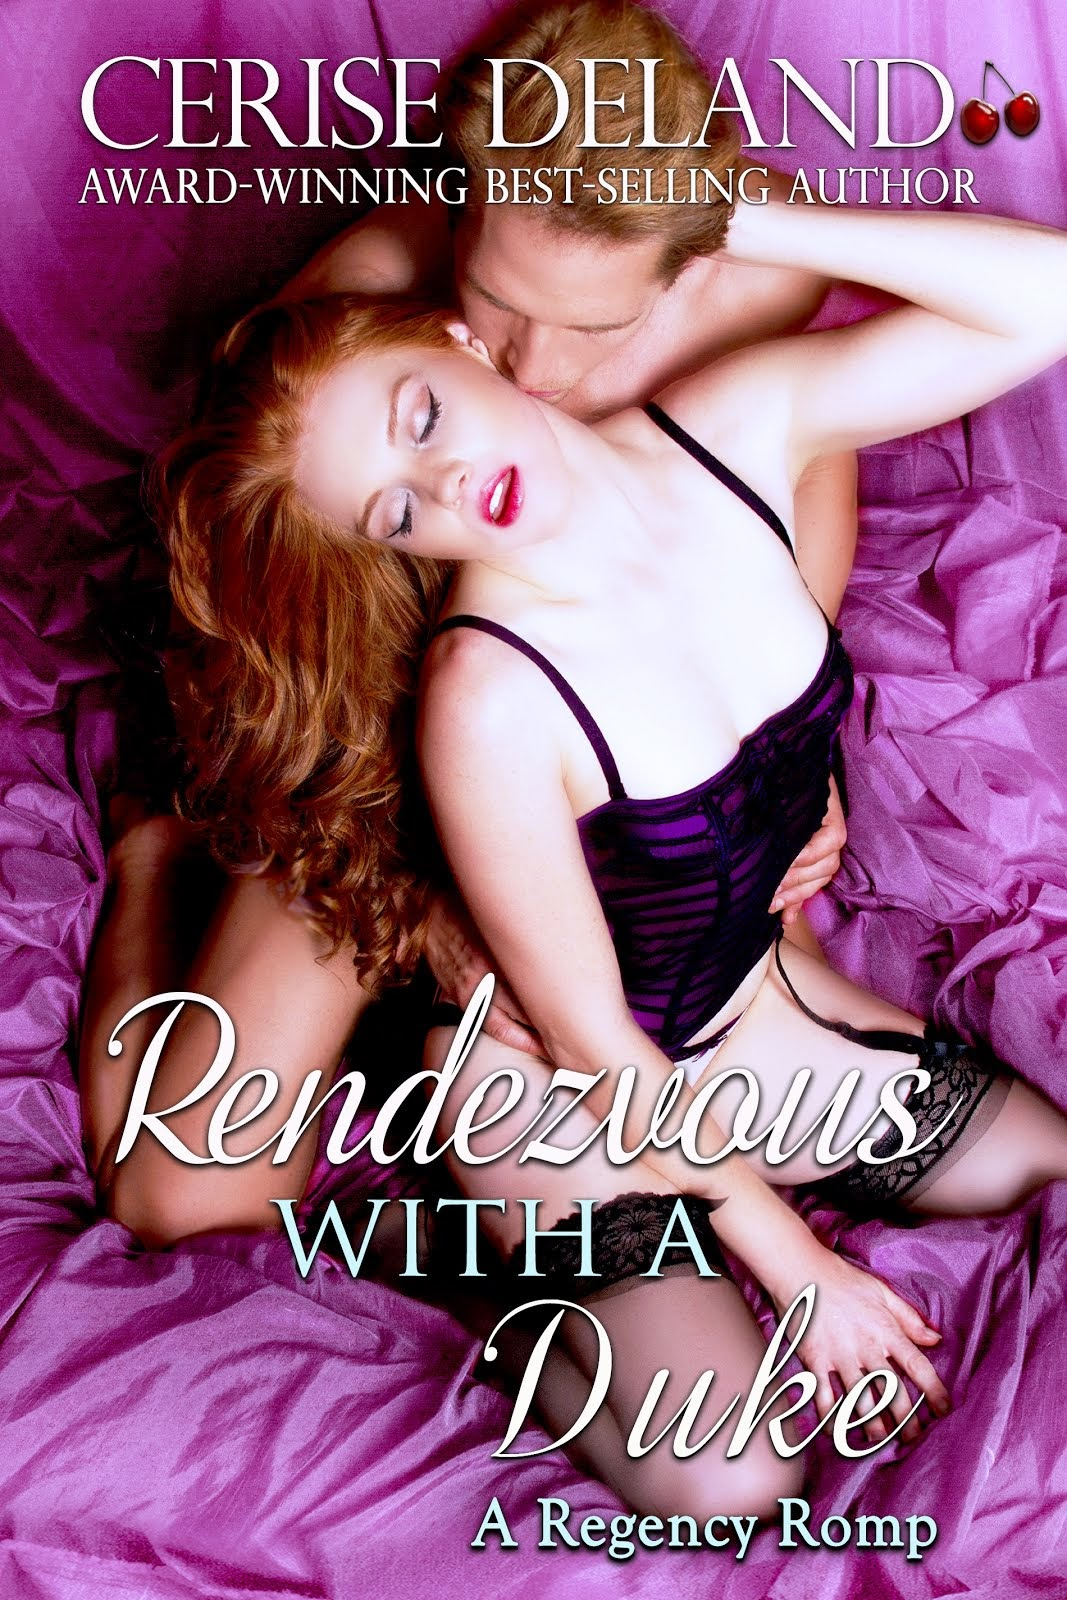 RENDEZVOUS WITH A DUKE, Top 20 Bestseller!